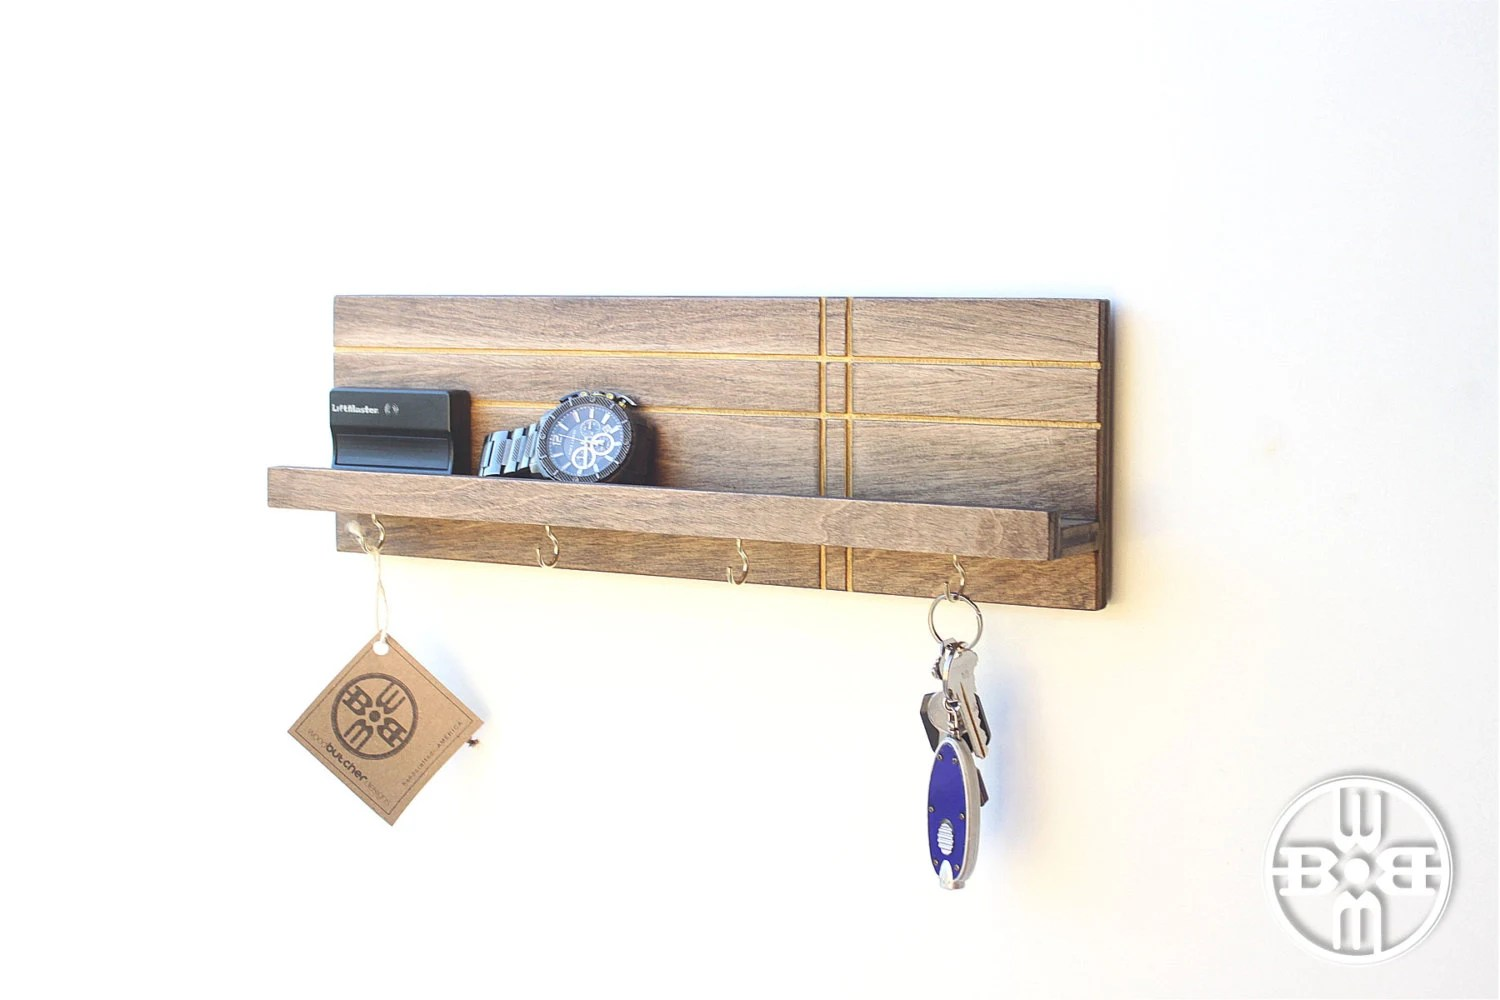 Key Holder For Wall Entryway Organizer Key Rack Gifts For